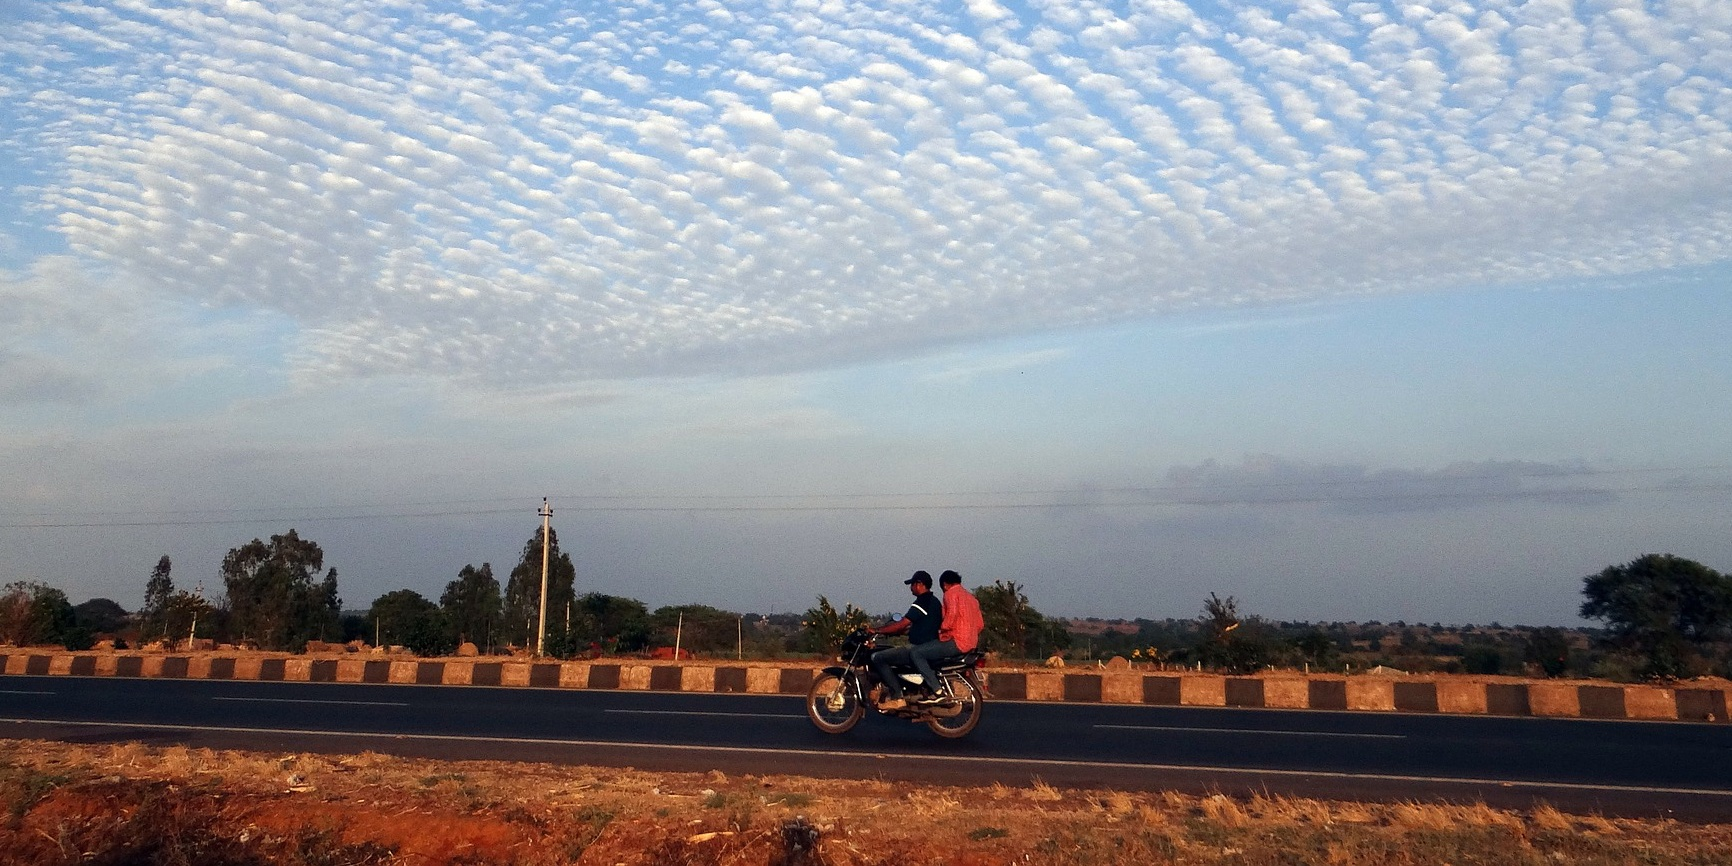 India may electrify all two- and three-wheelers by 2025 to reduce pollution, fossil fuel dependency